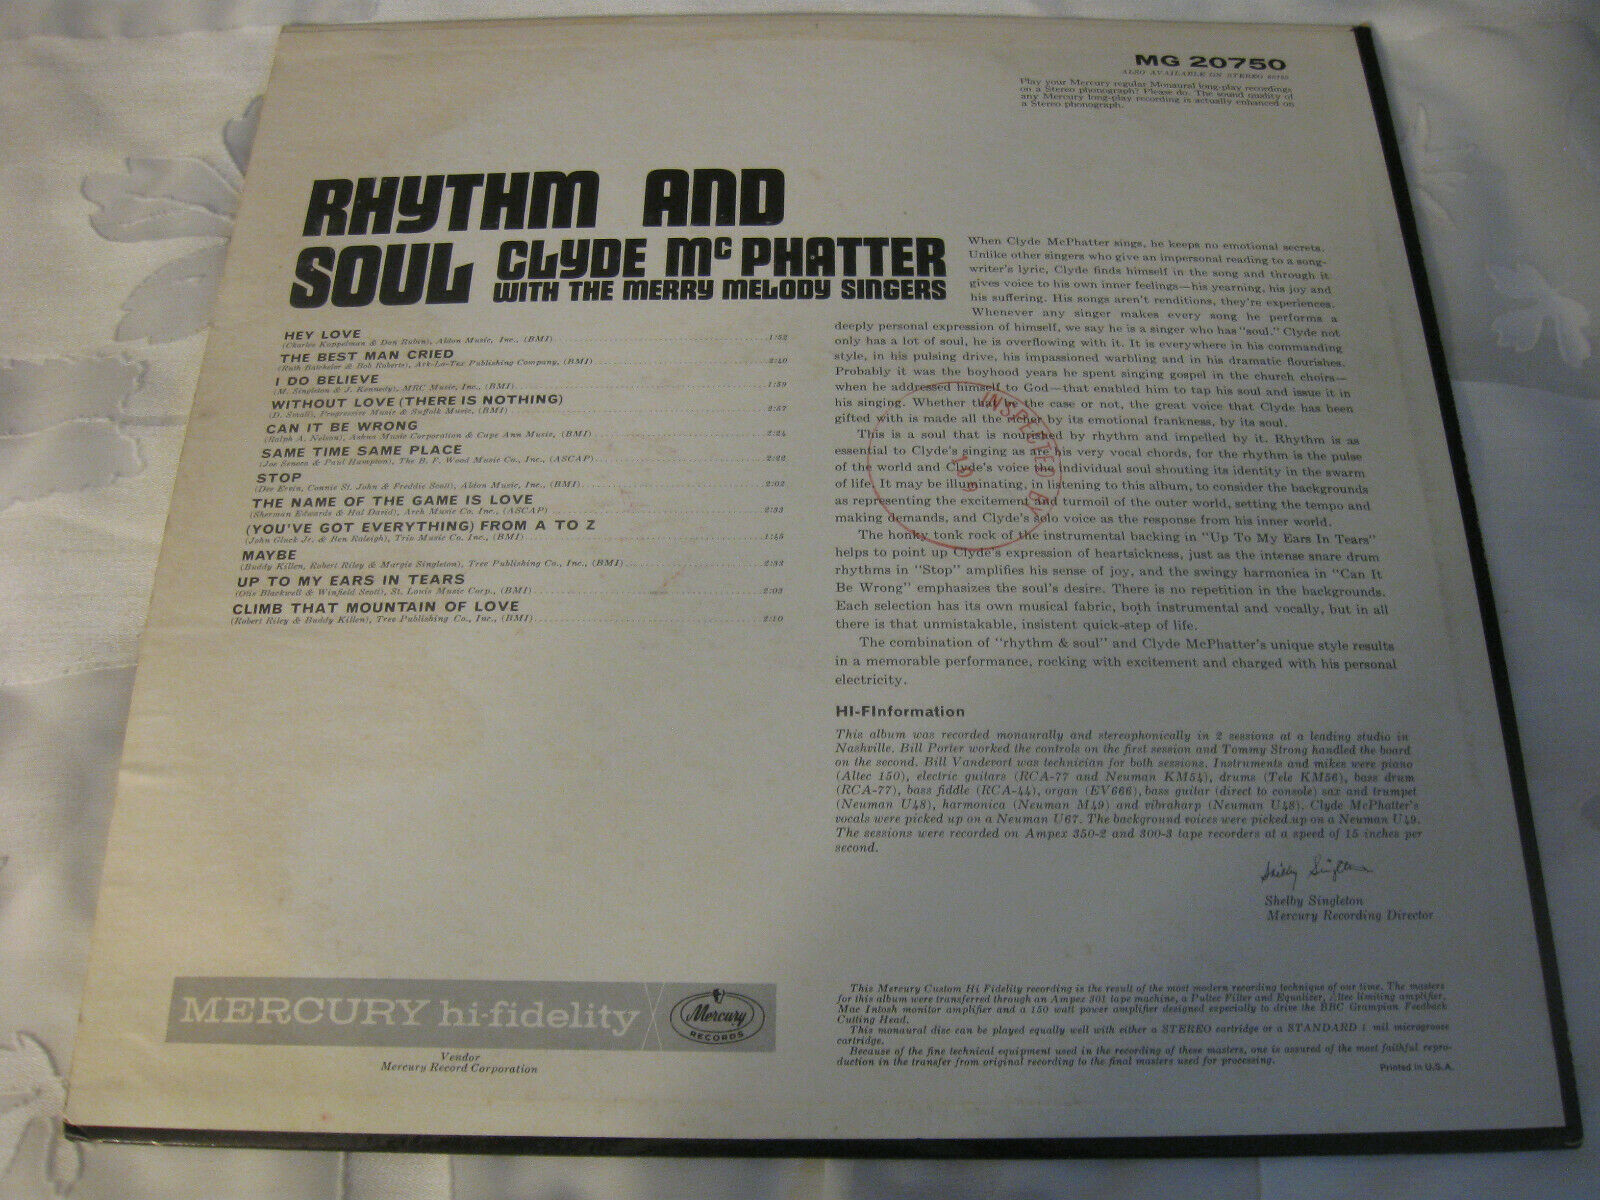 Clyde McPhatter Rhythm And Soul Mercury MG 20750 Mono LP Vinyl Record Album image 2